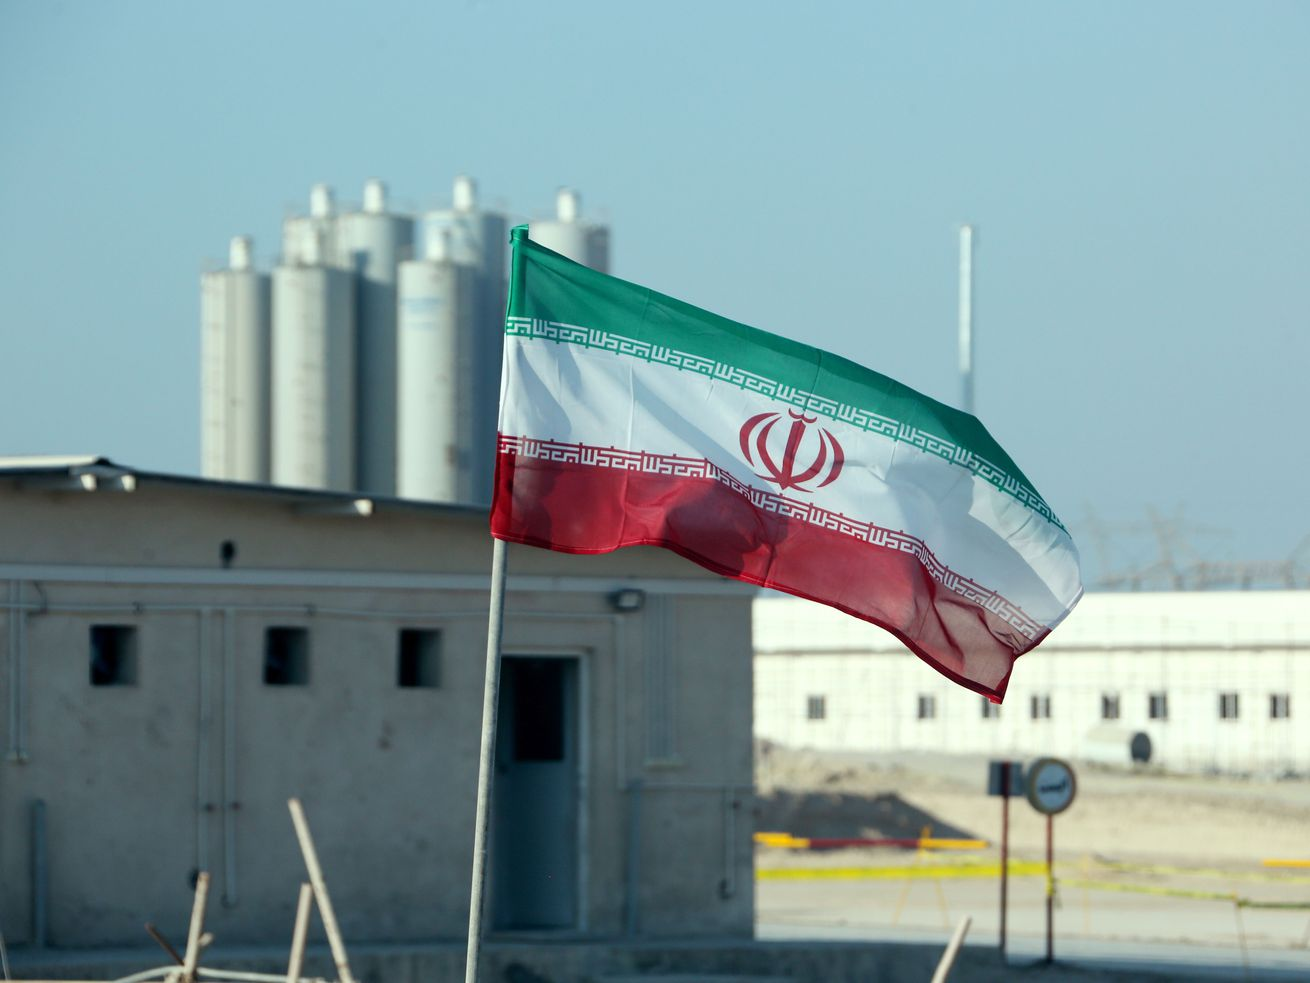 Iran says it's now enriching uranium at levels higher than before nuclear deal